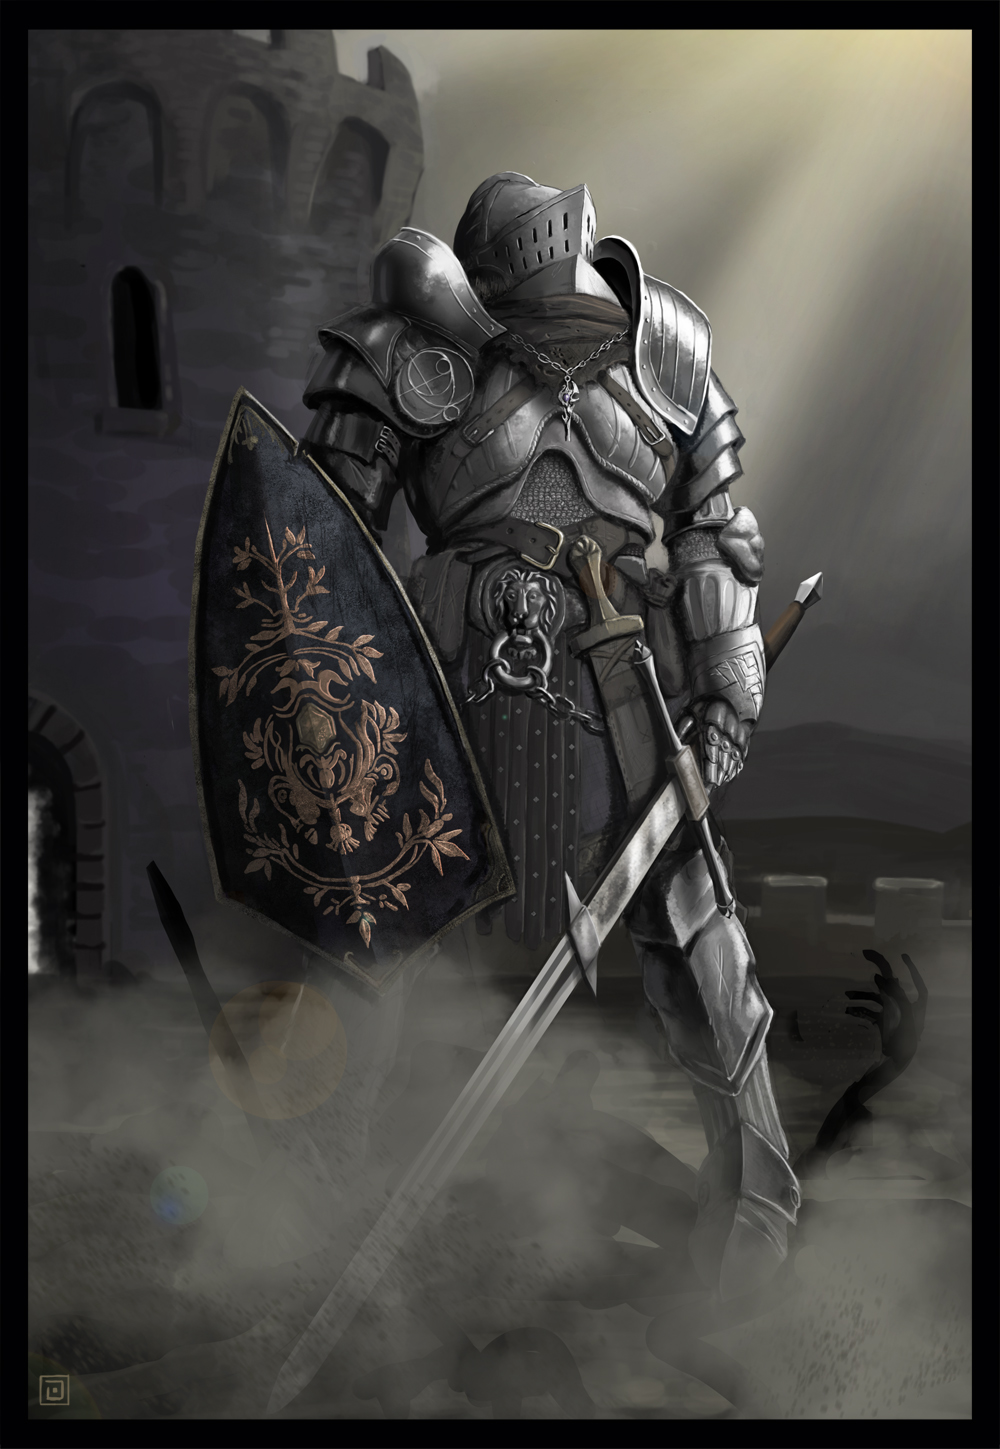 DARK SOULS by Kaffeebohnson